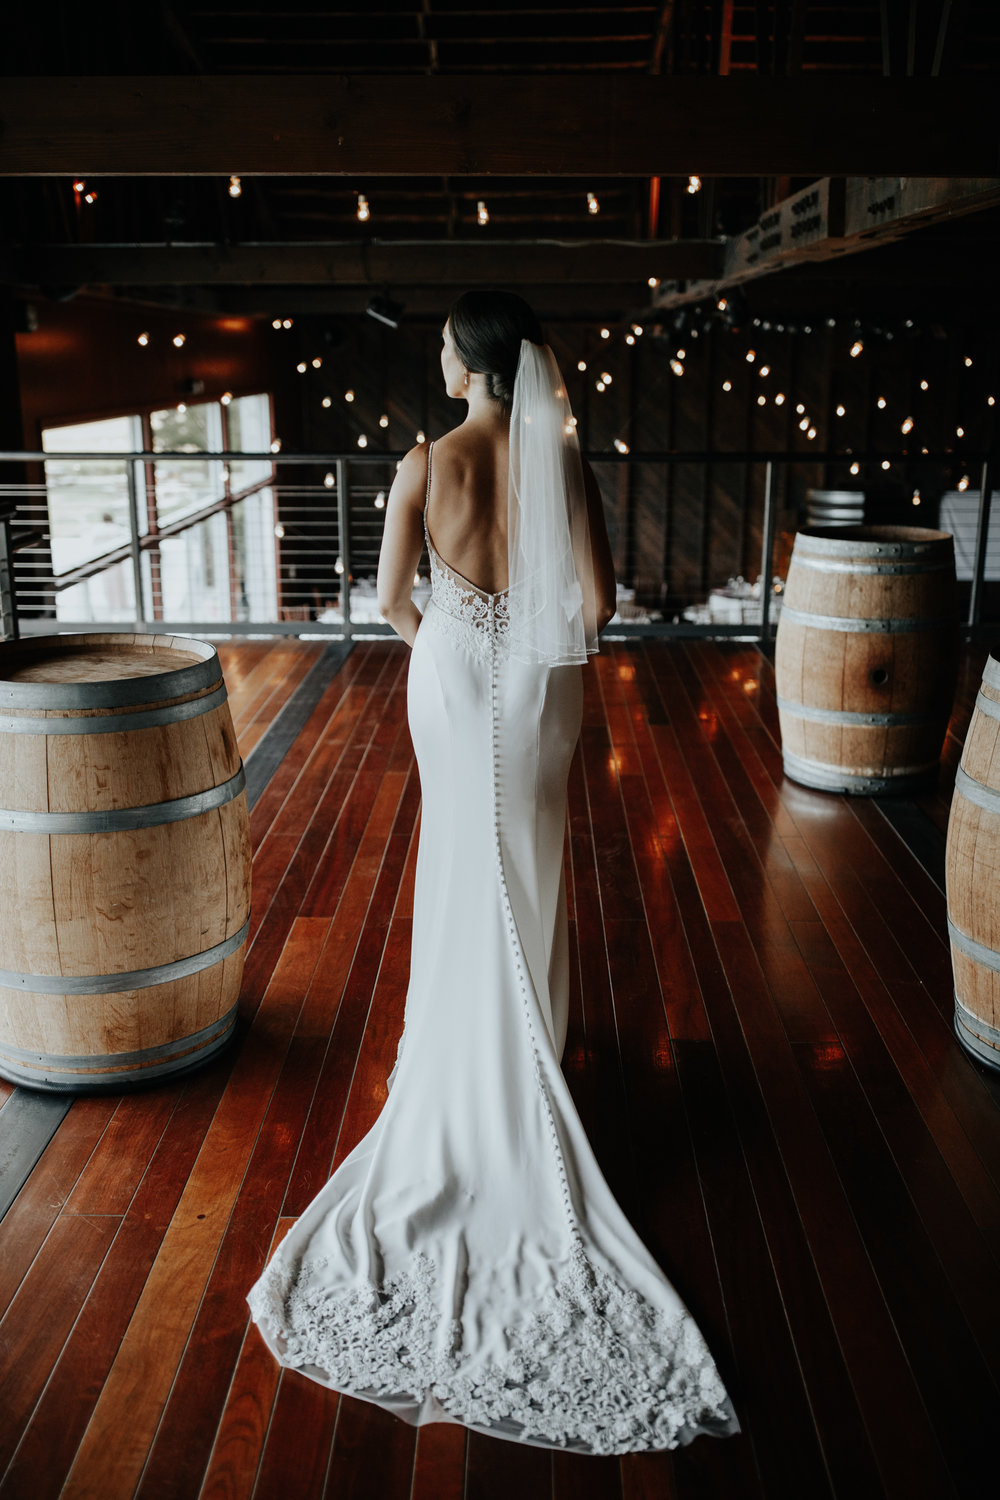 Saltwater-Farm-Vineyard-Wedding-59.jpg